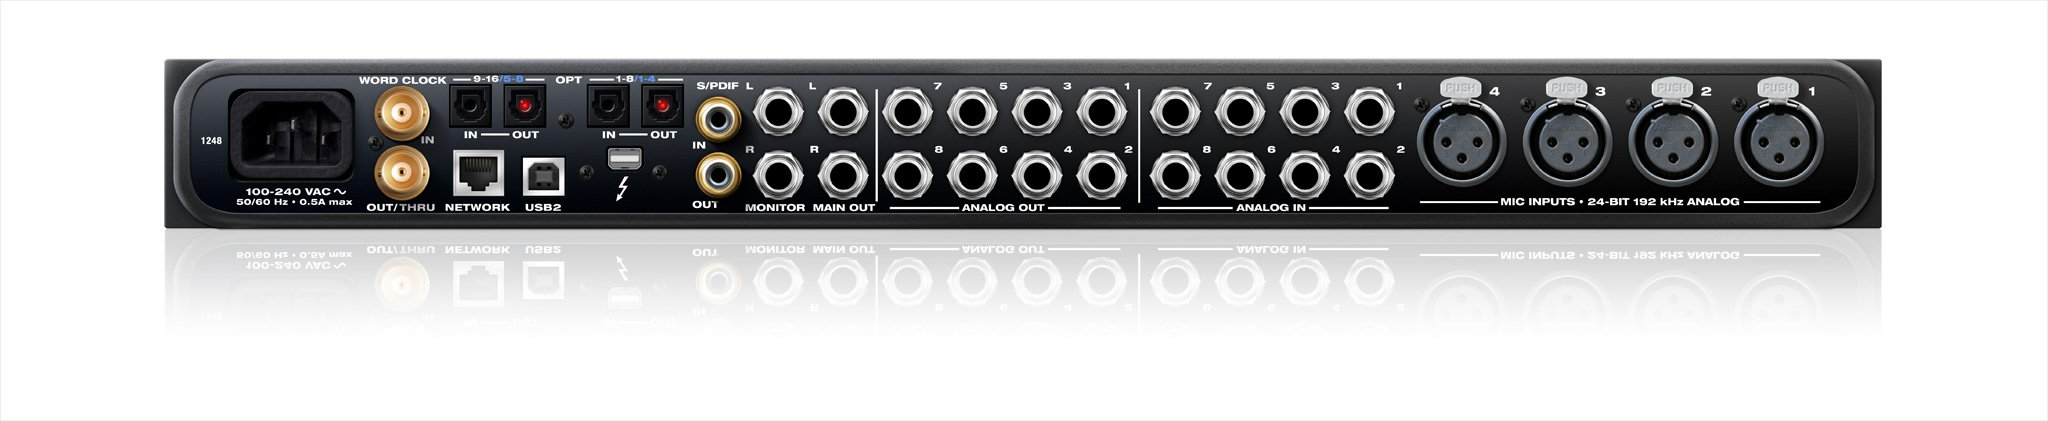 MOTU 1248 48-Channel Thunderbolt Audio Interface with AVB Networking 1248-THUNDERBOLT